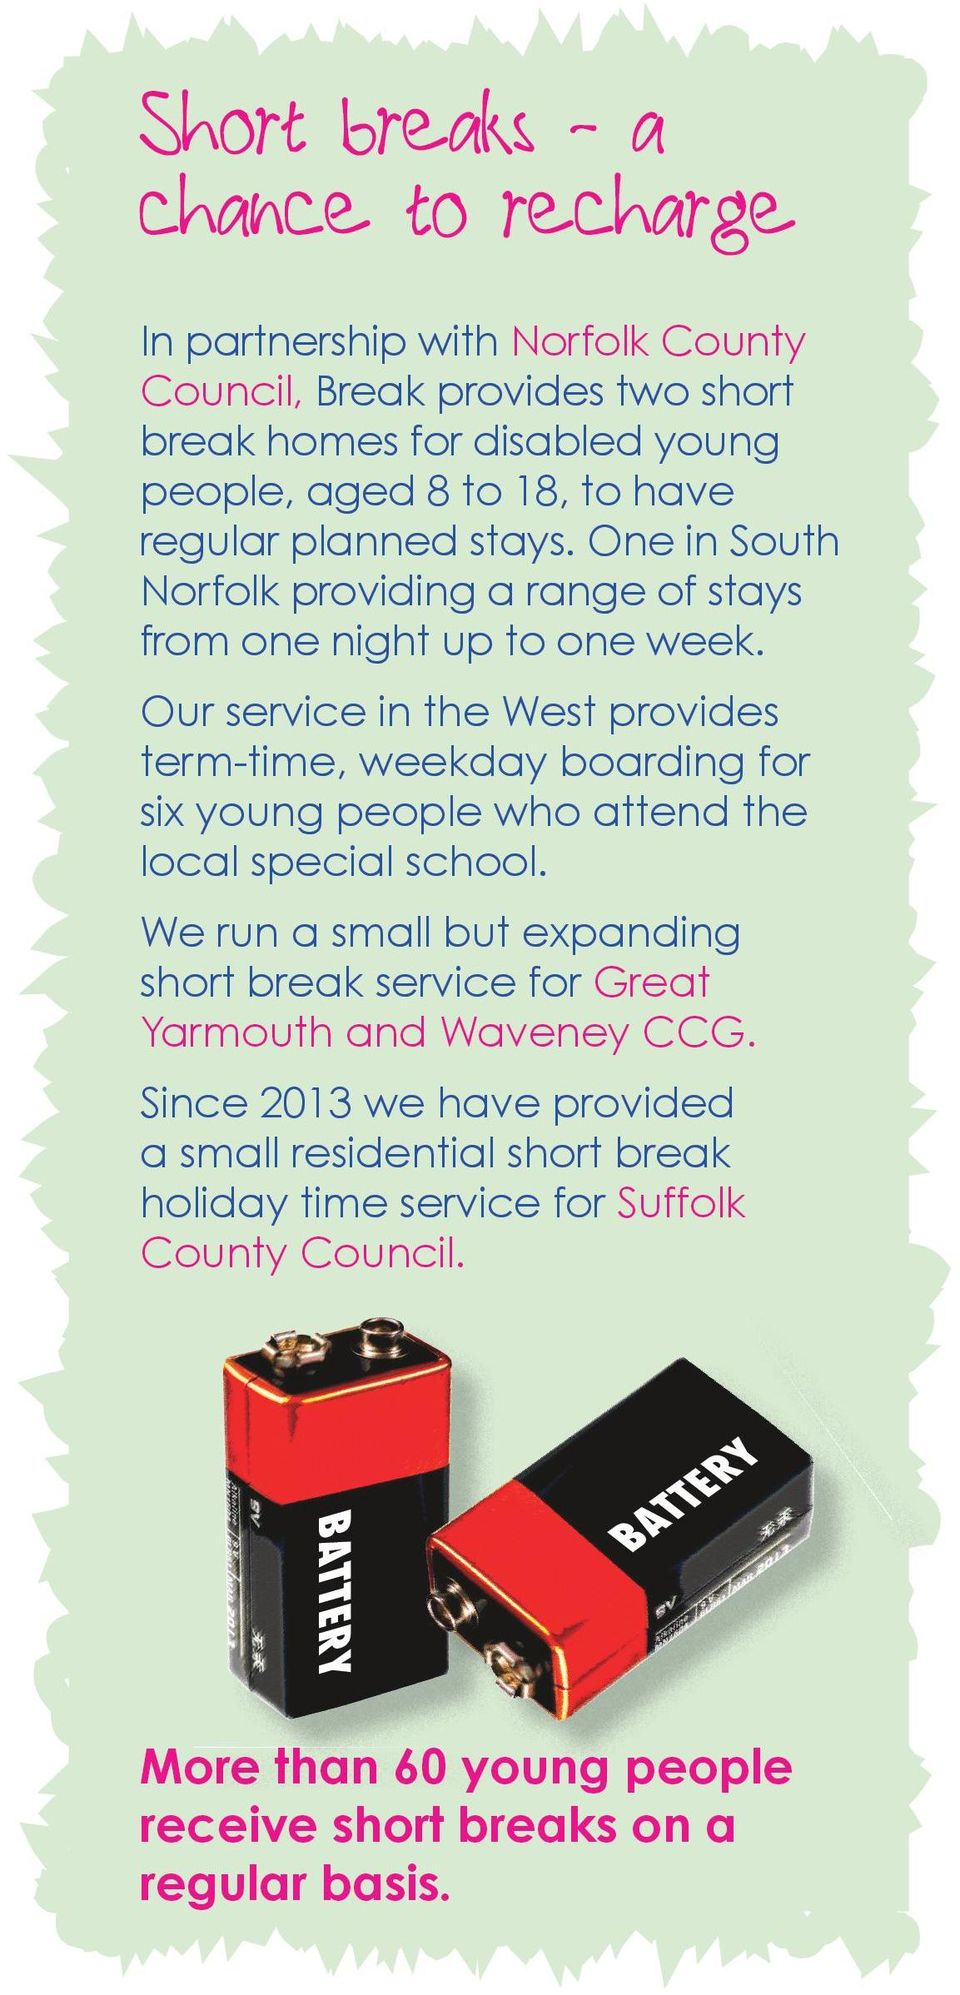 Our service in the West provides term-time, weekday boarding for six young people who attend the local special school.